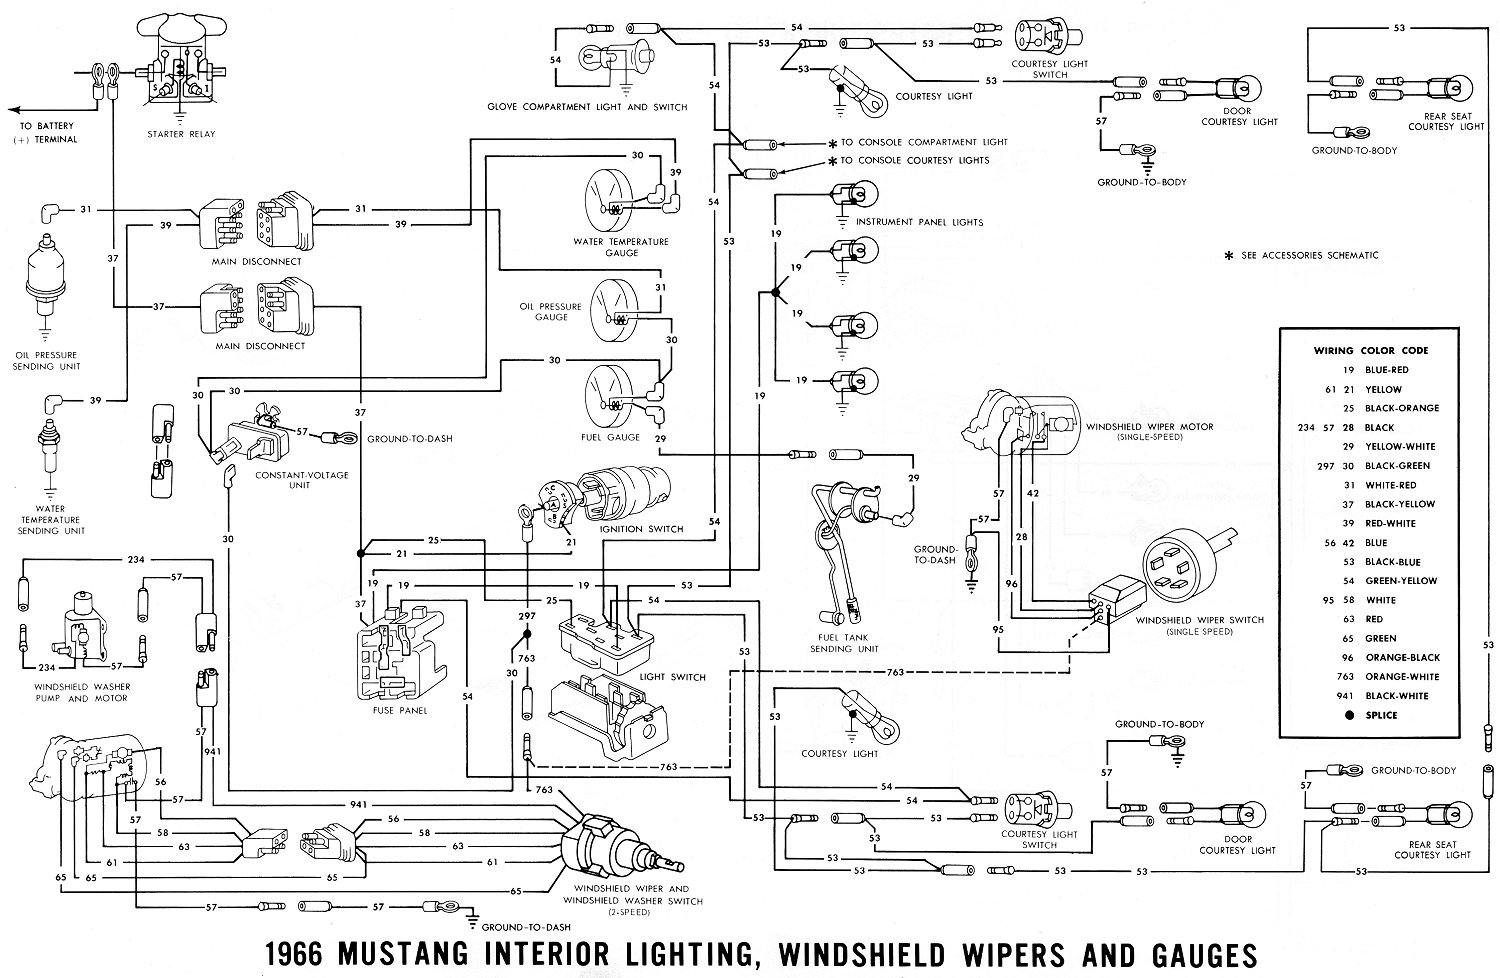 1966 mustang wiring diagrams average joe restoration rh averagejoerestoration com 1966 mustang wiring 1966 mustang wiring harness